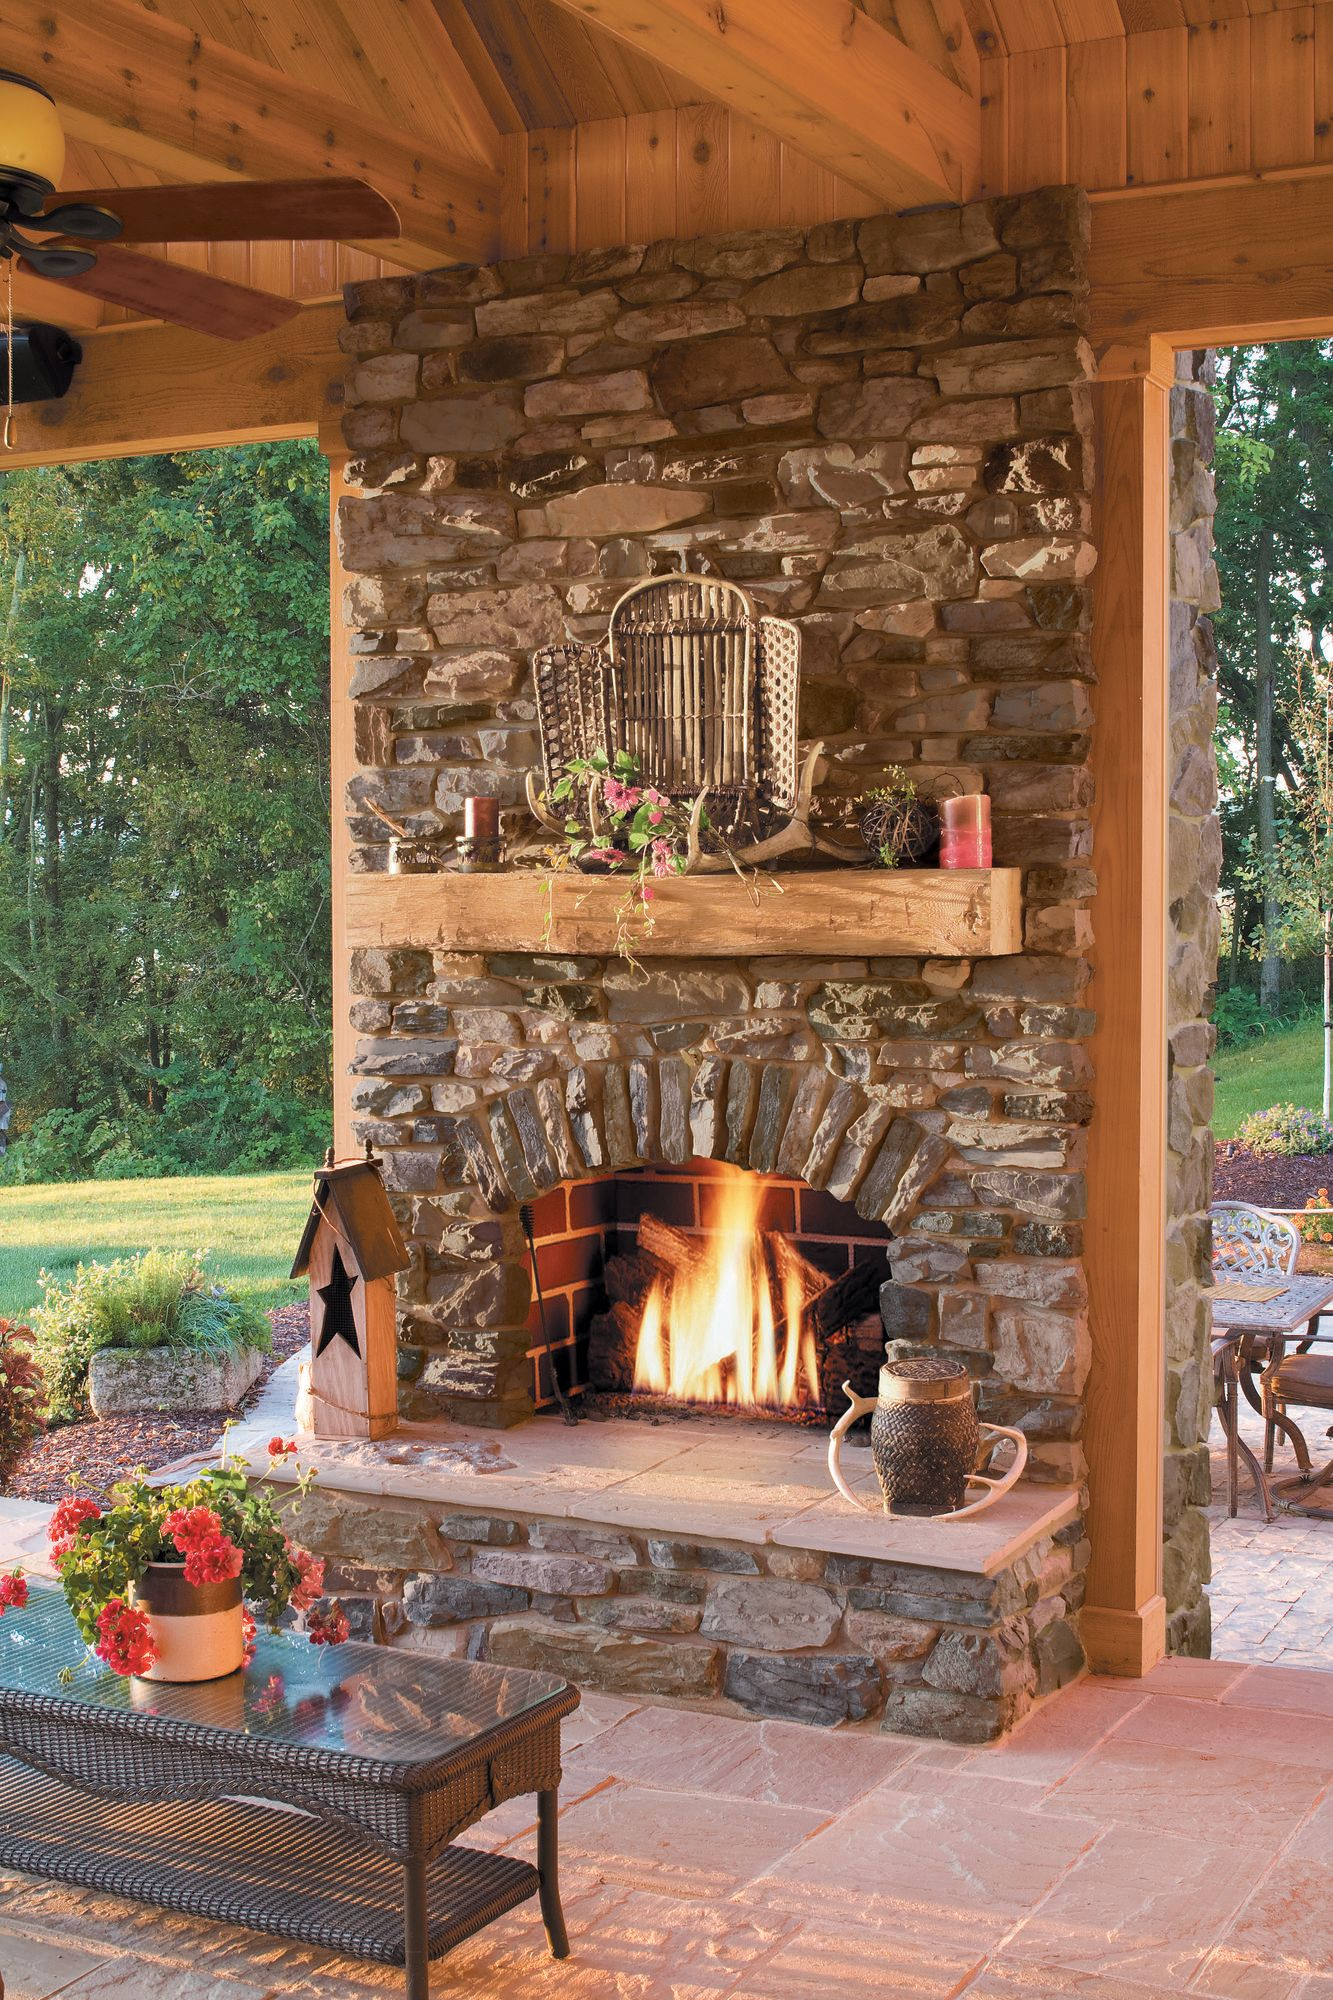 c1fb5b100e7e74ab2ca430ca4841de69 Top Result 53 Inspirational Outside Stone Fireplace